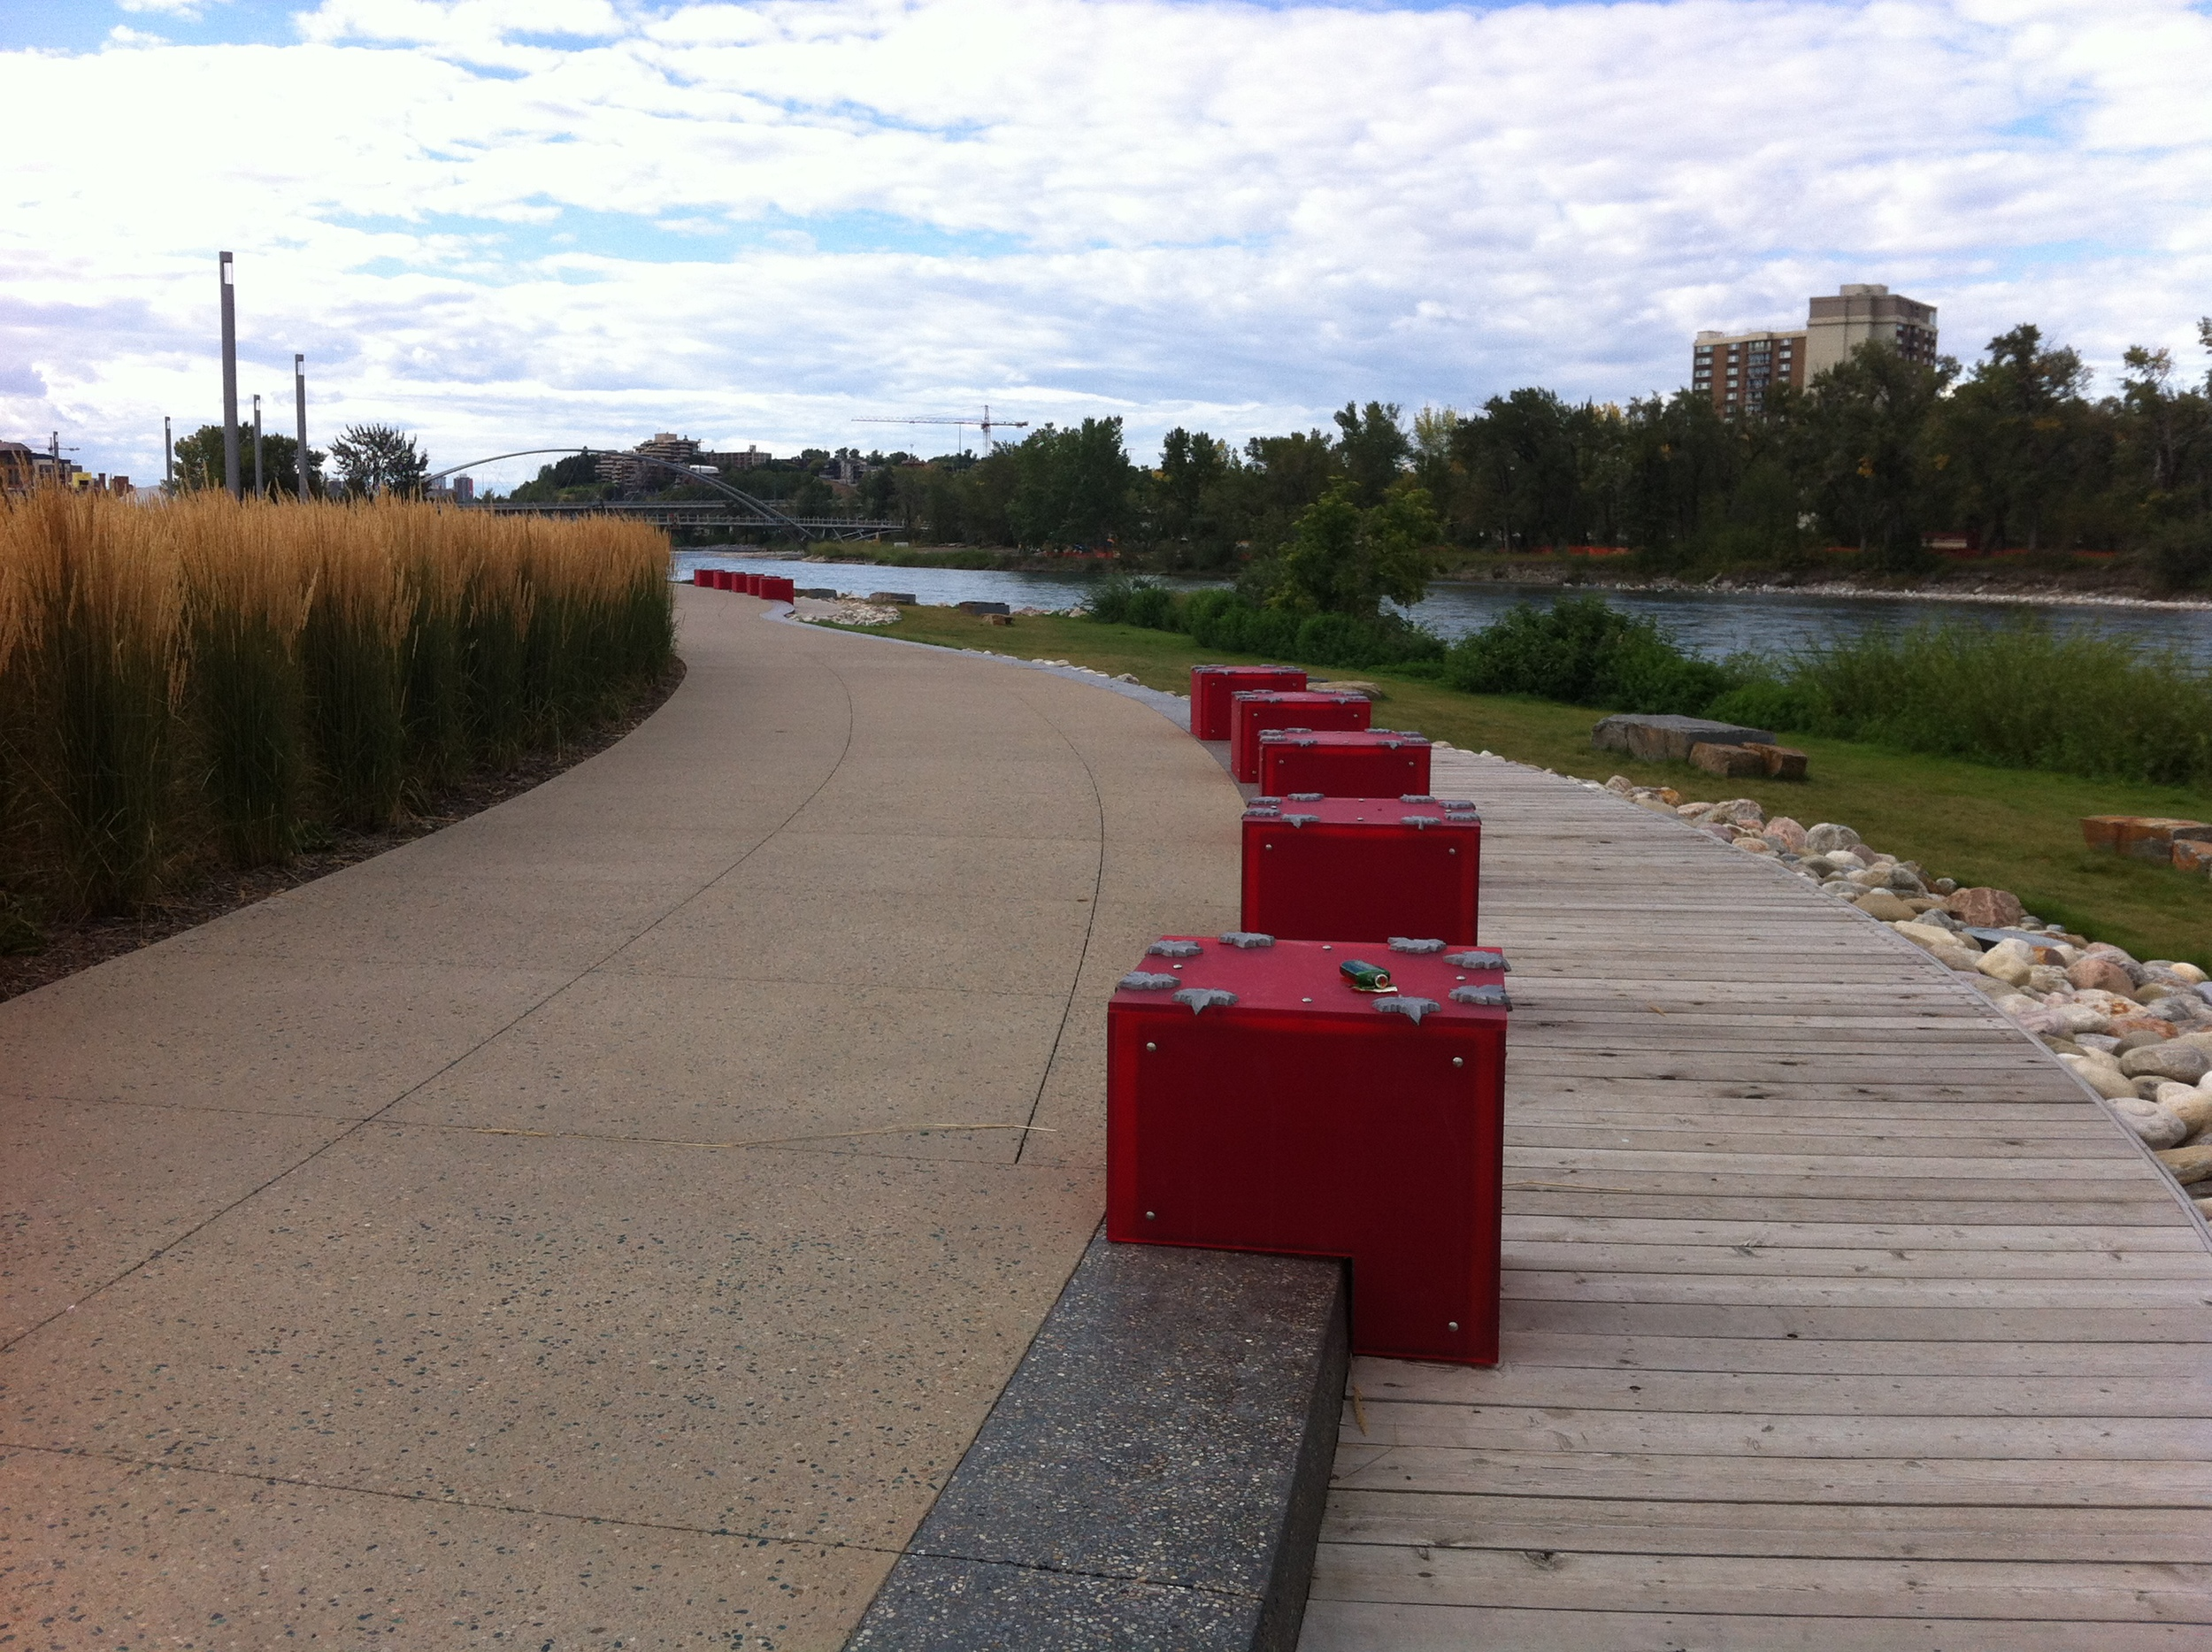 Bow River promenade at Fort Calgary with the new St. Patrick's Island bridge in the background. This will become a very busy area with the densification of the surrounding residential neighbourhoods.